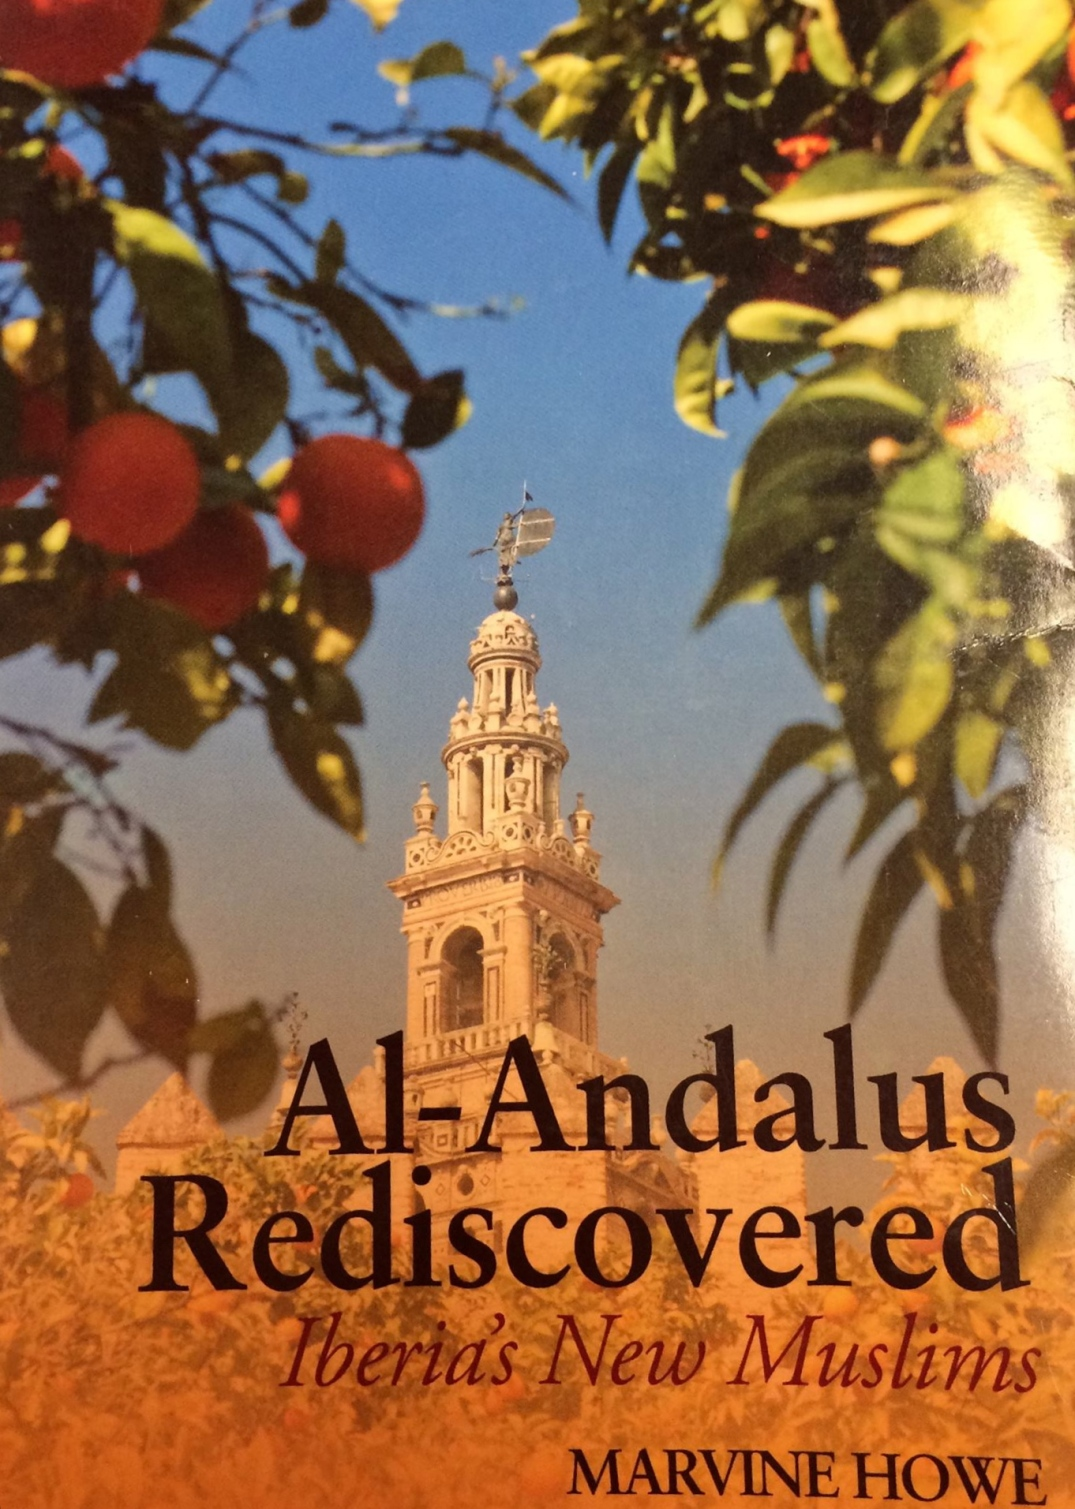 Marvine Howe. Al-Andalus Rediscovered: Iberia's New Muslims. London: Hurst and Co., 2012. (A US edition is available from Oxford University Press USA.)